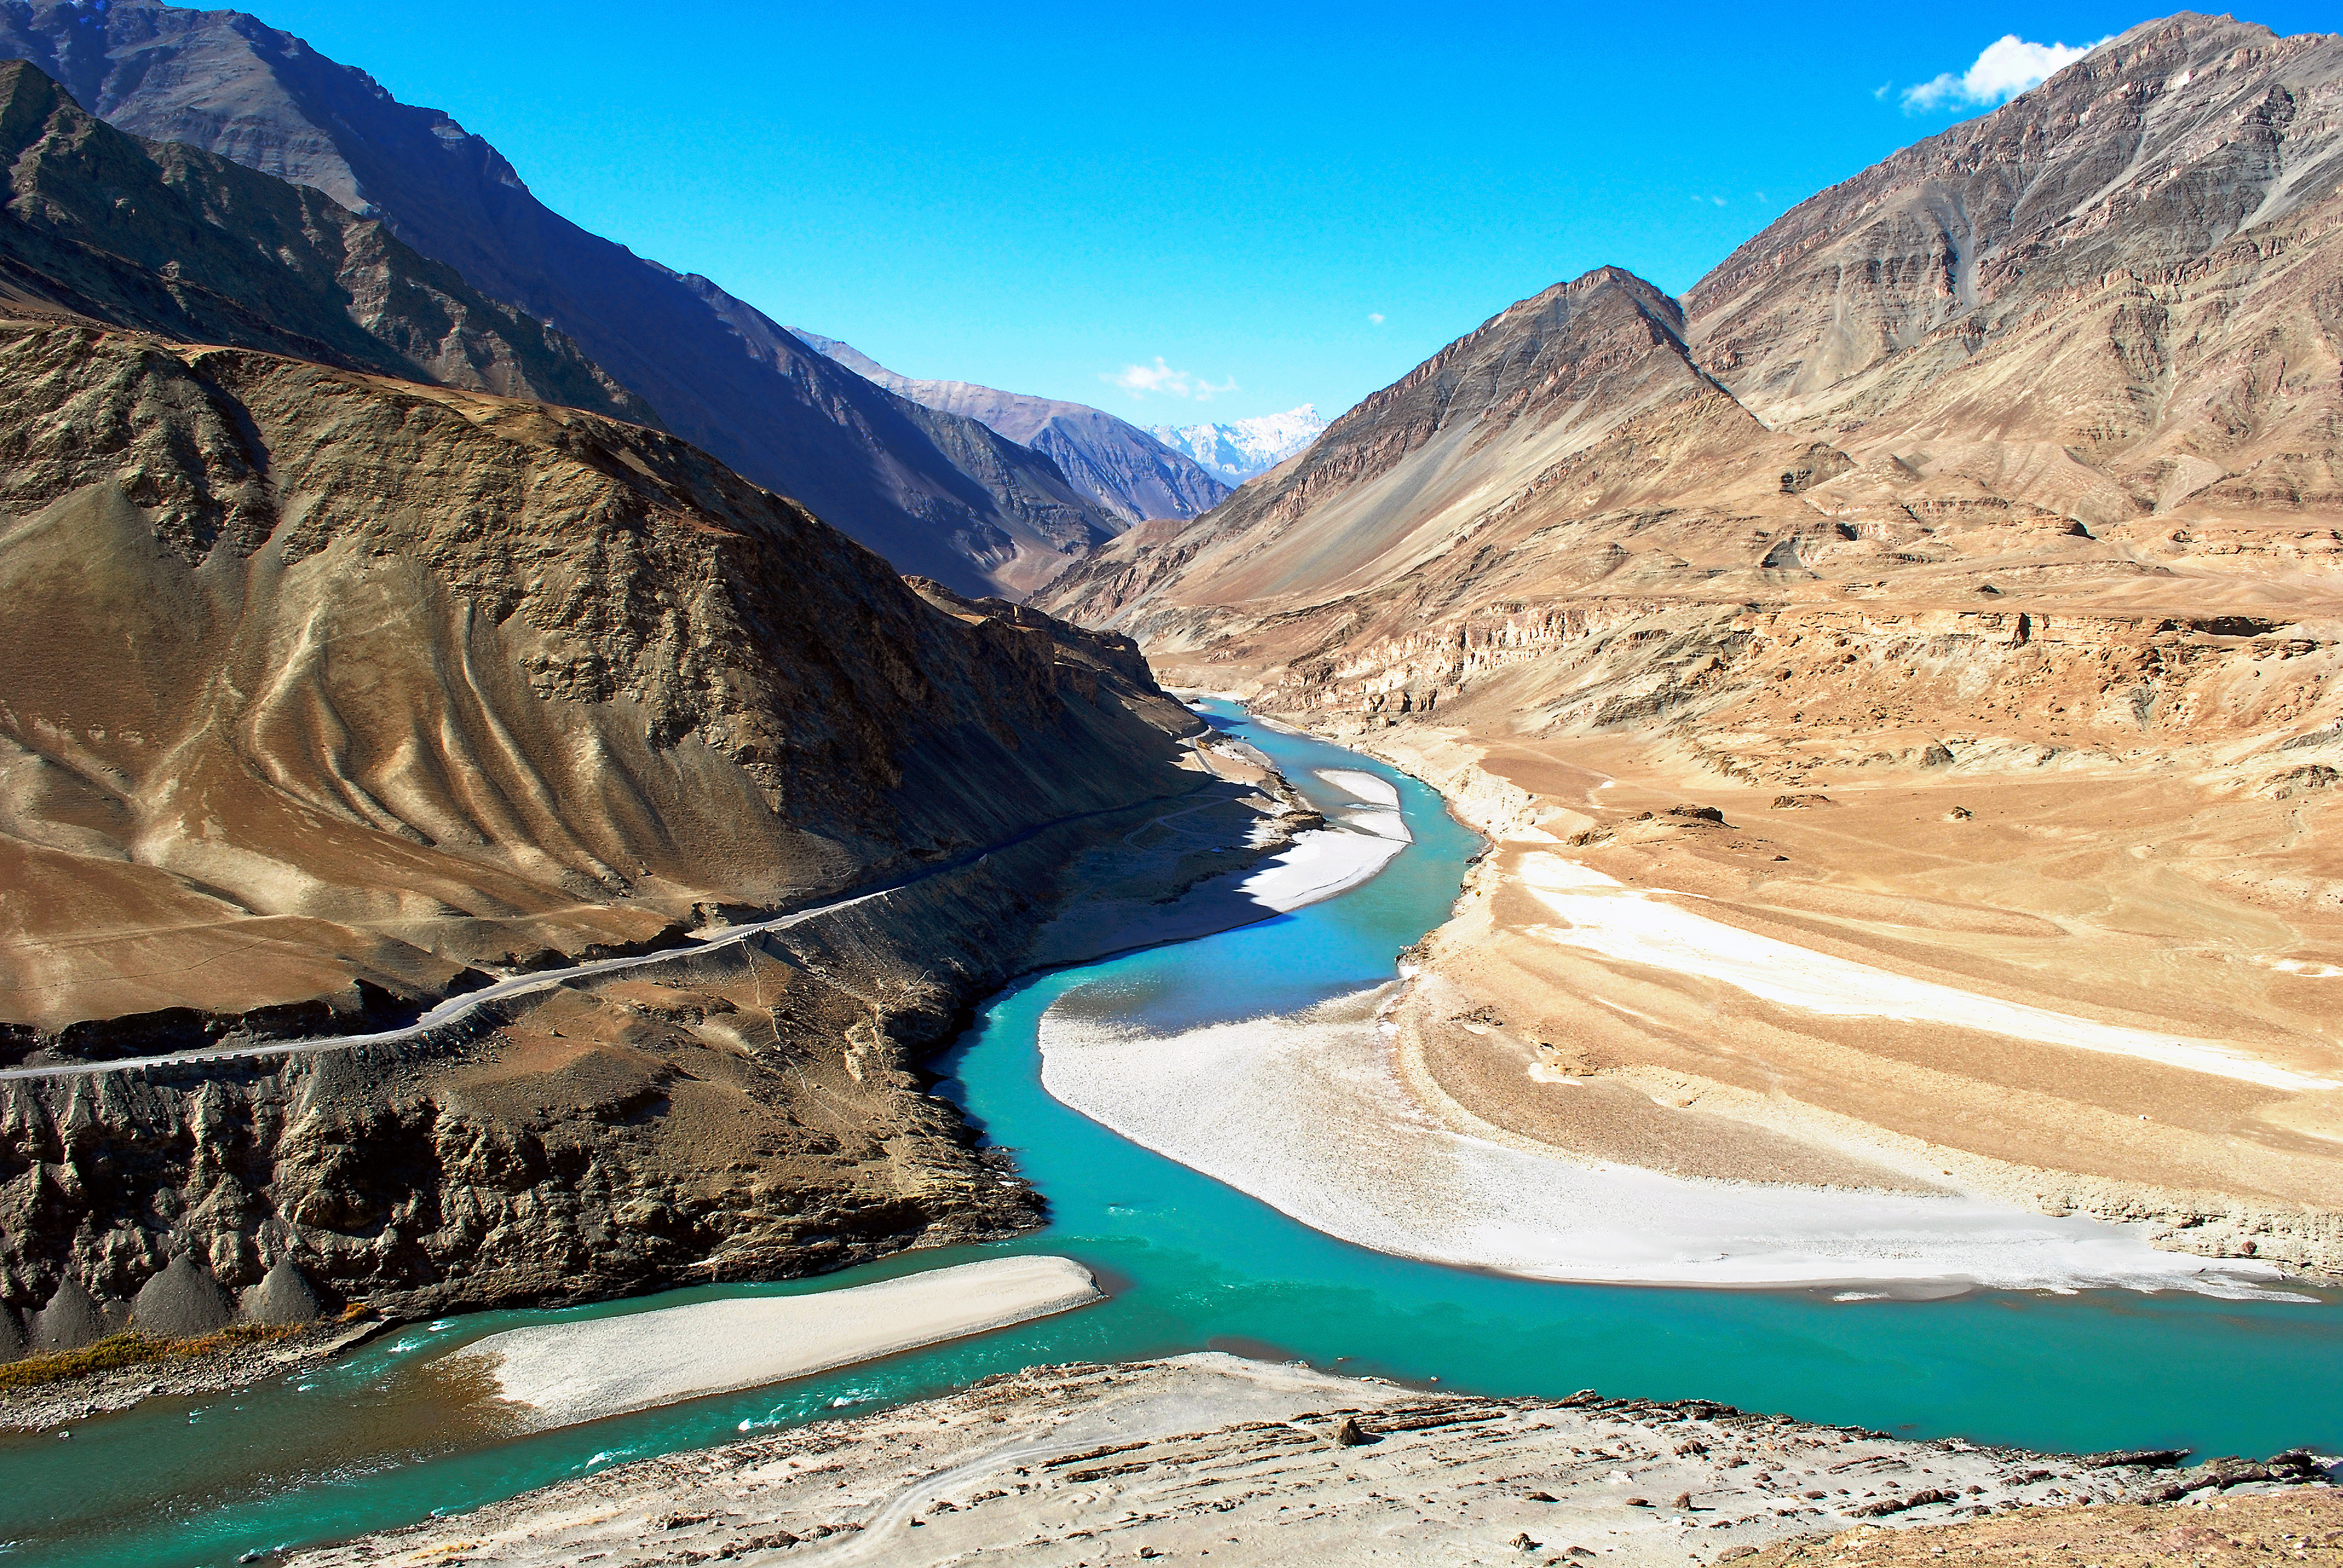 1519613070_13-10-08_217_confluence_of_indus_river_n.jpg